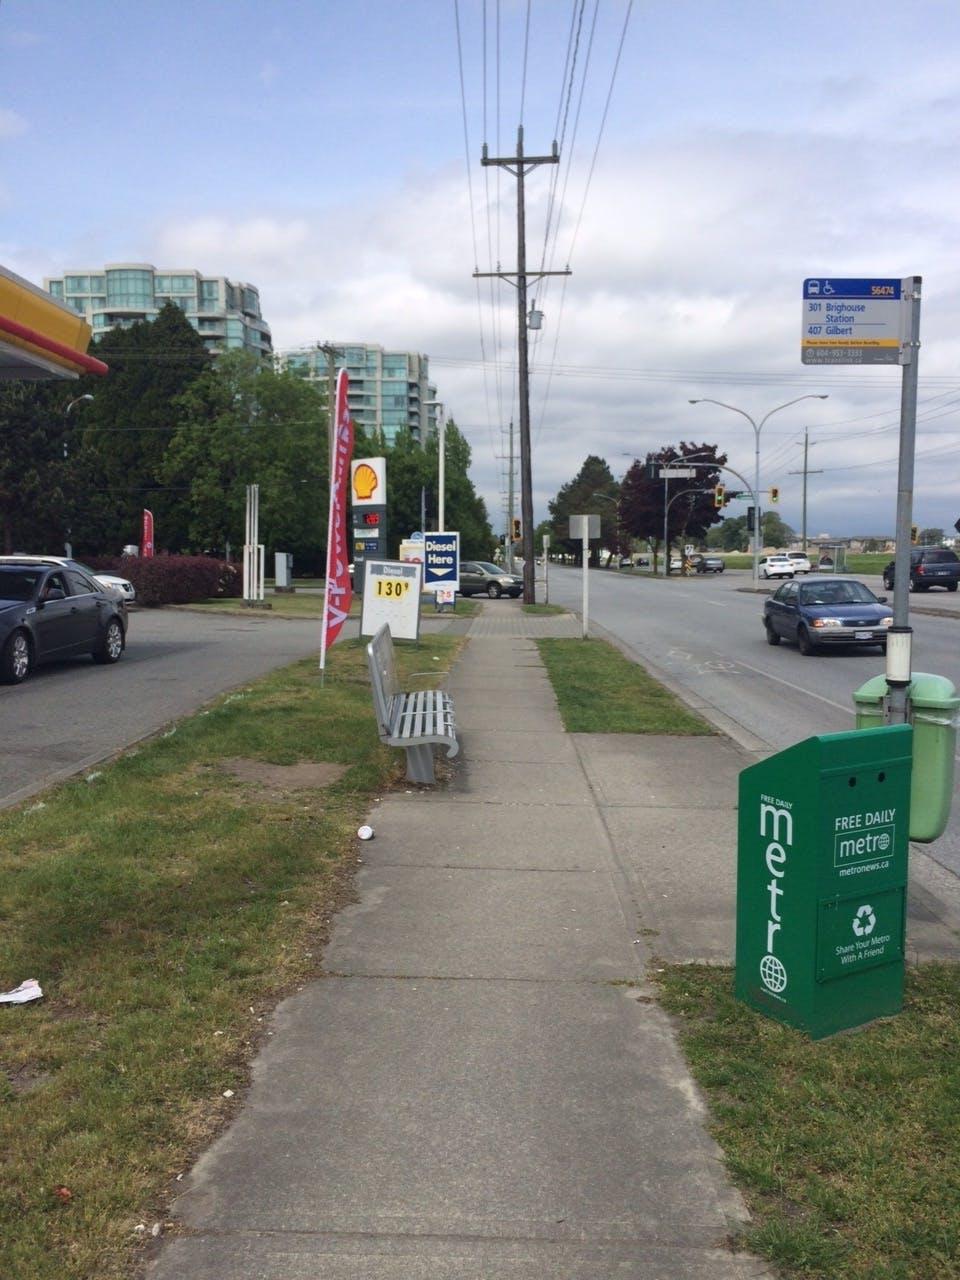 Bus stop without transit shelter